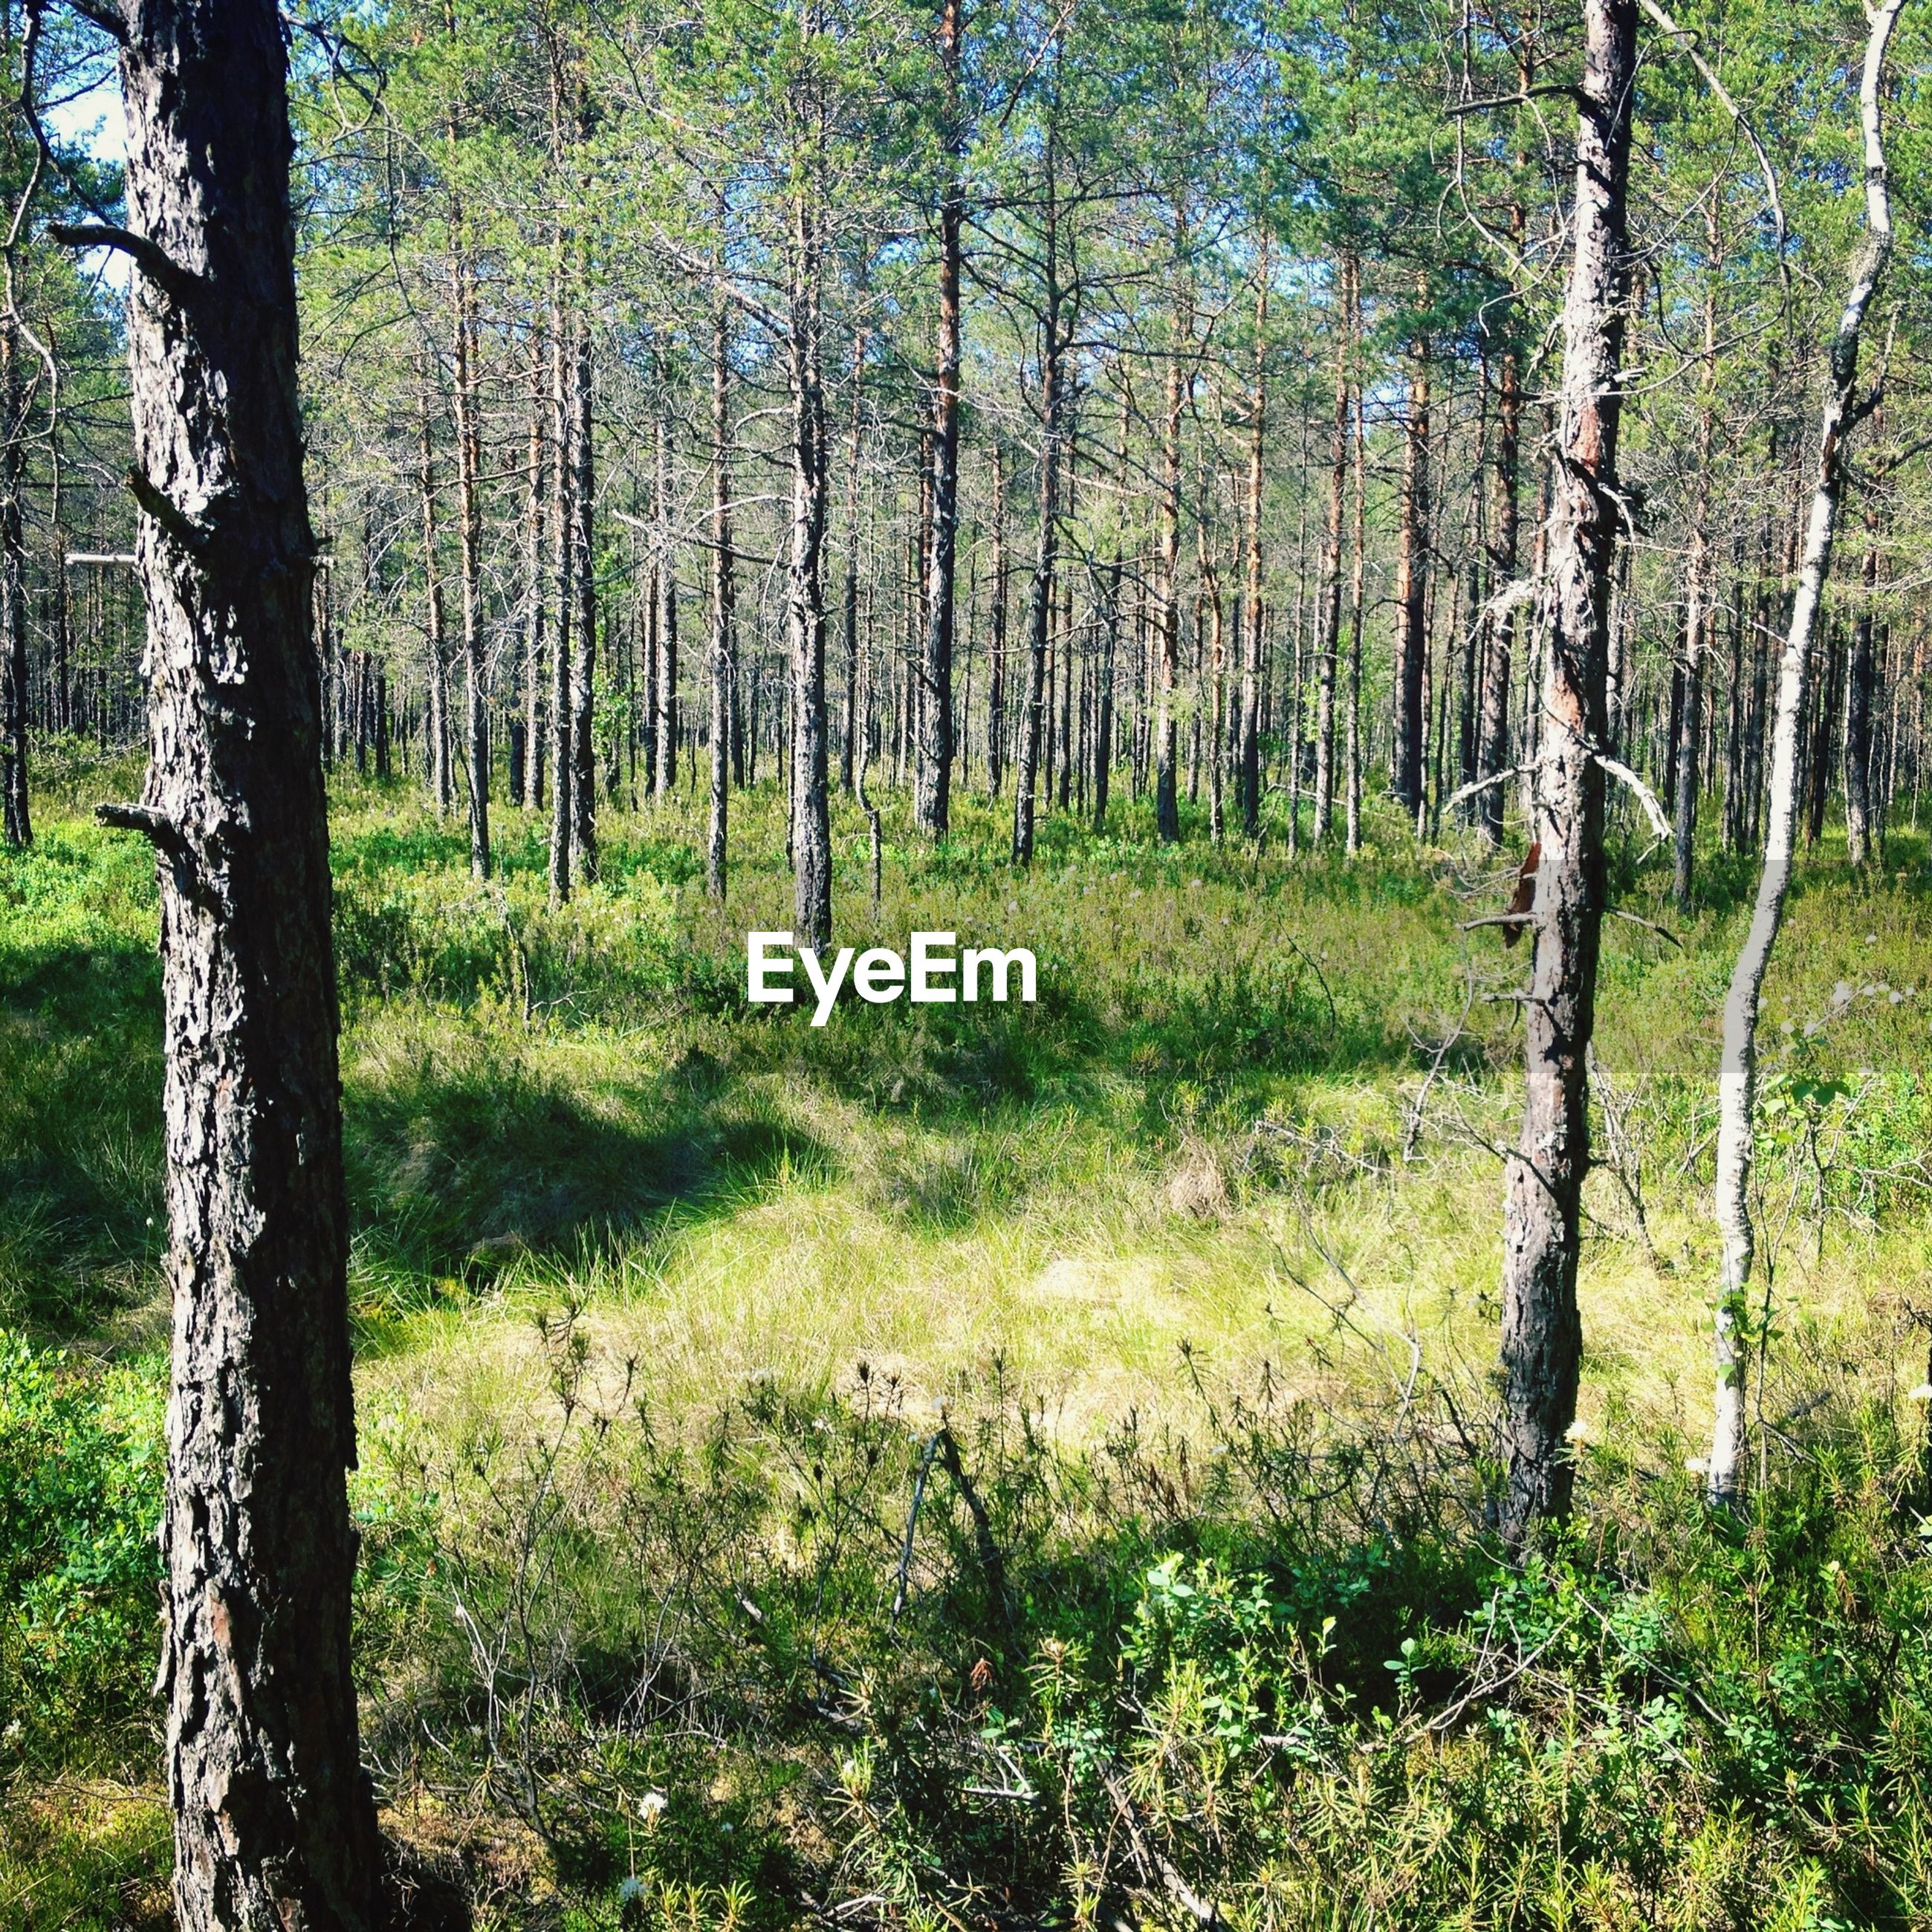 TREES AND GRASS IN FOREST